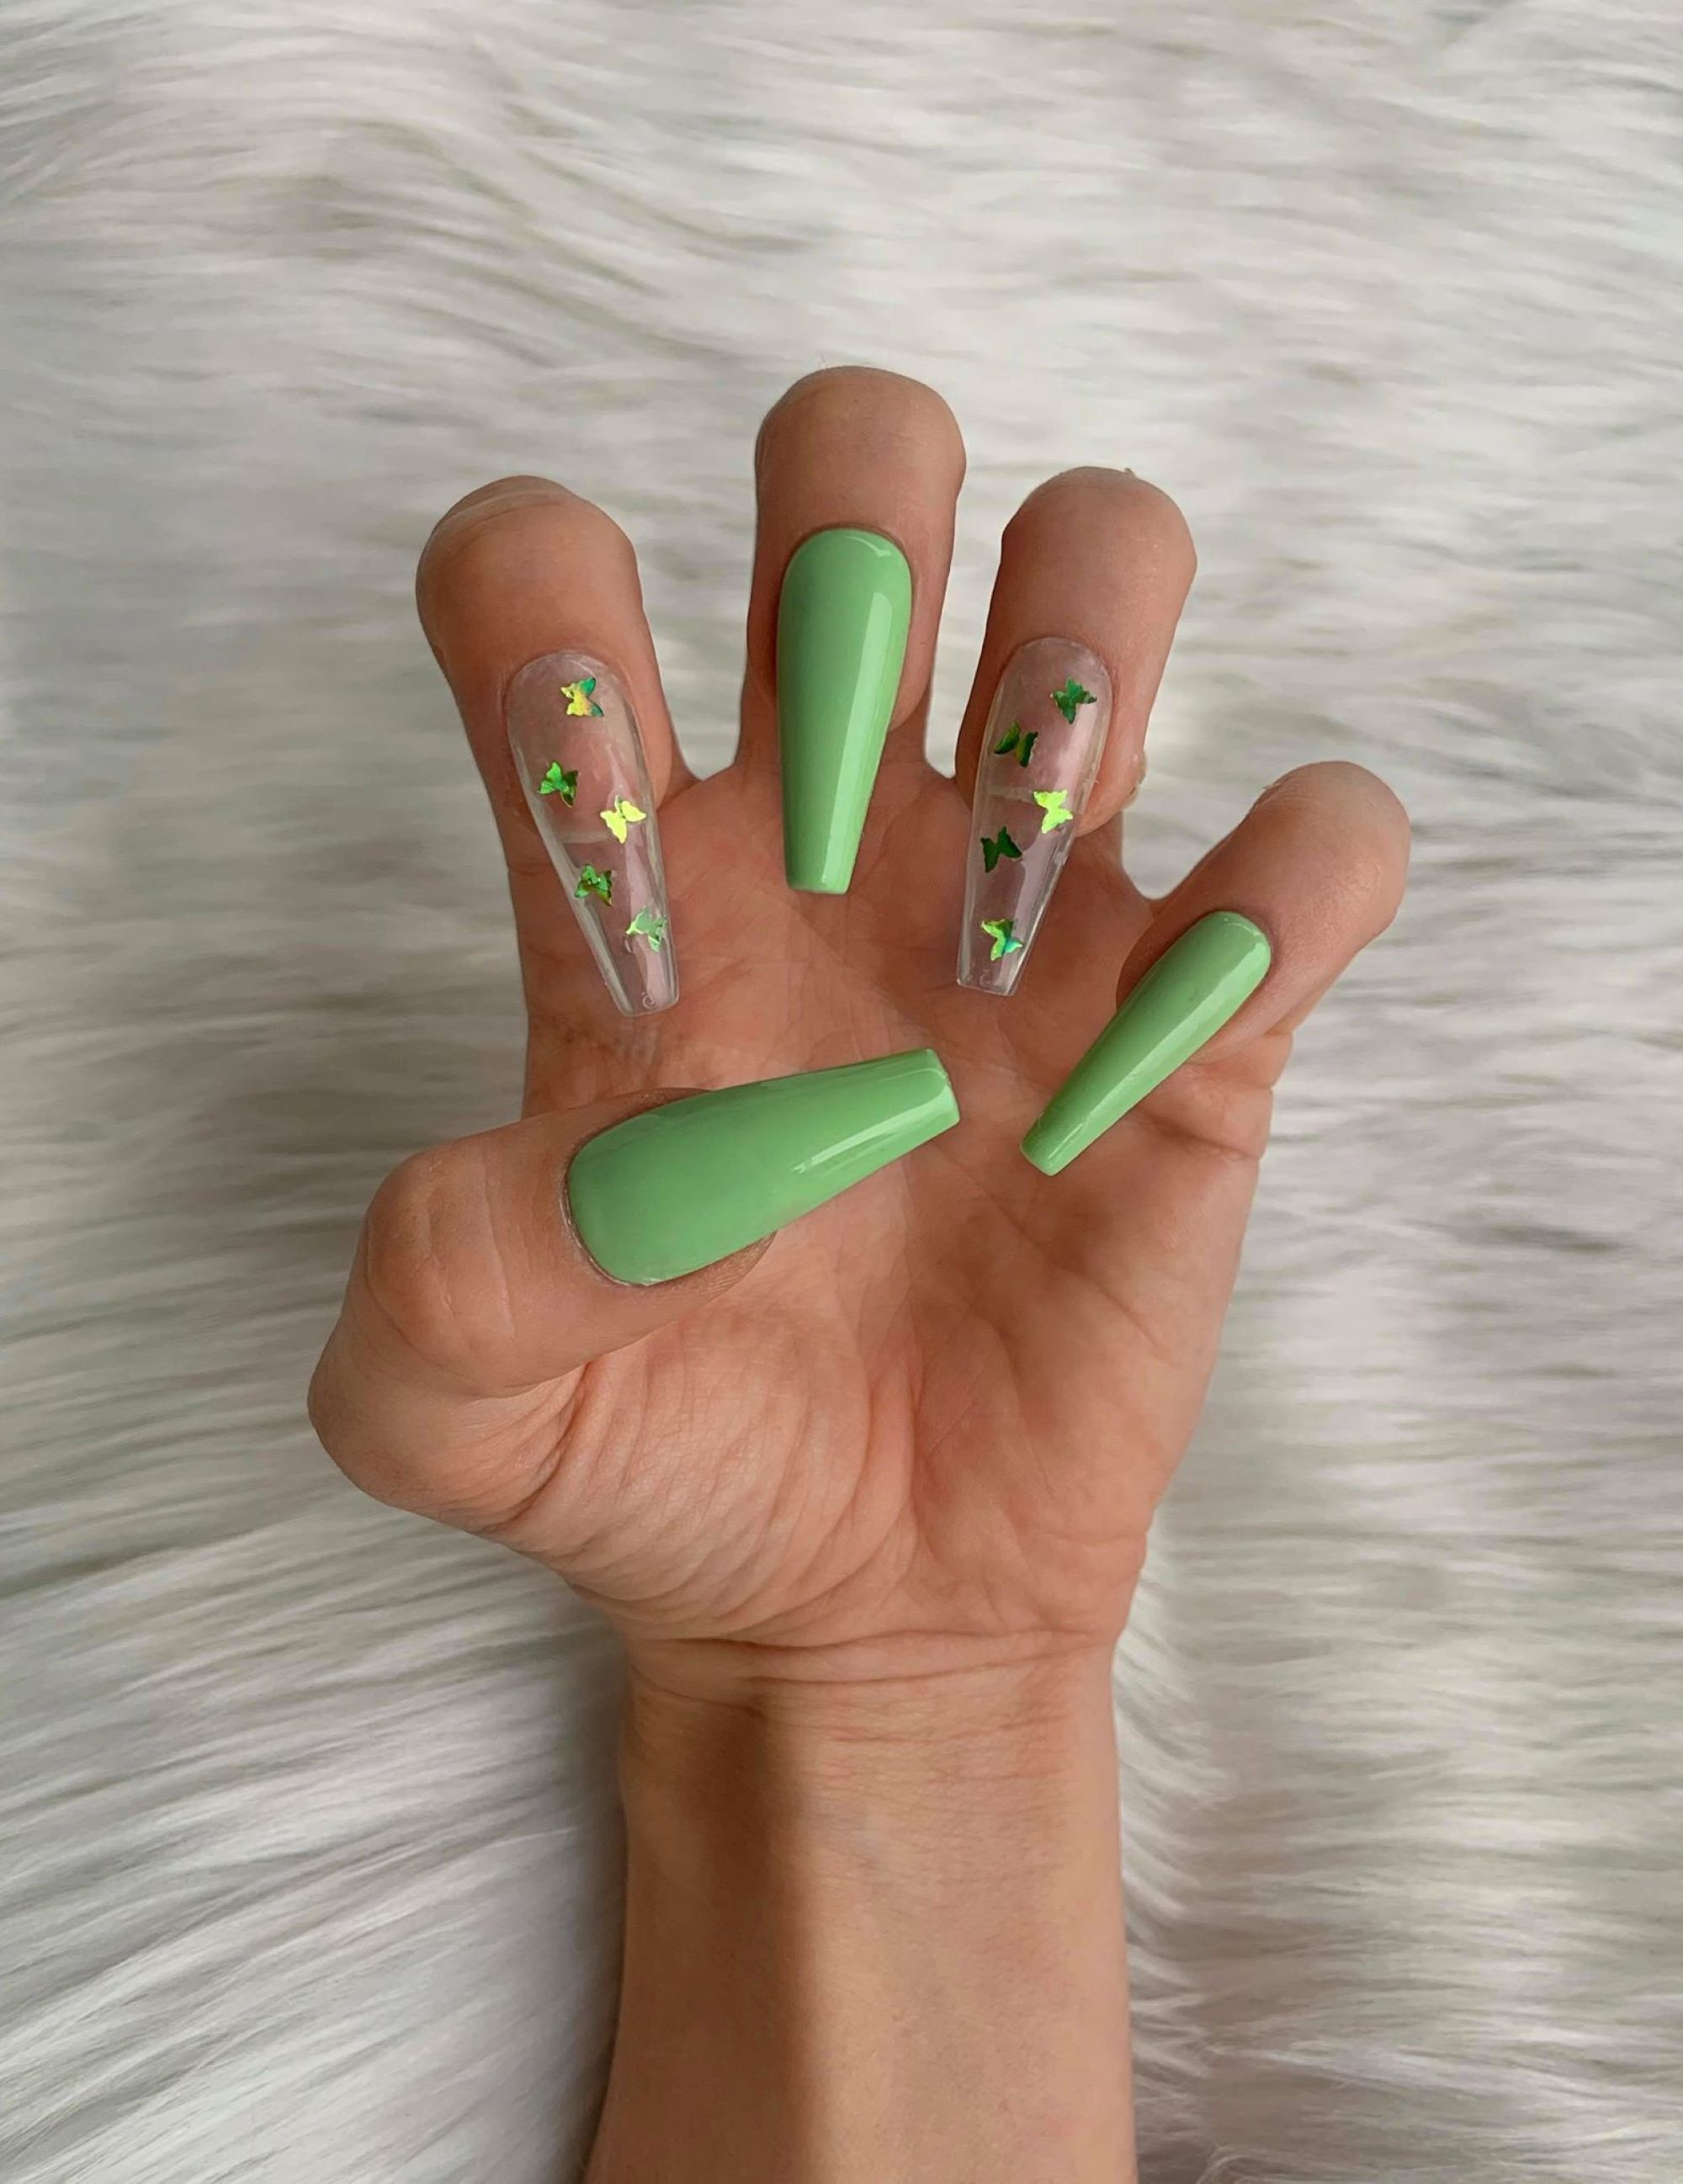 Mint Green Butterflies Luxury Press On Nails Matte Or Glossy Custom False Nails Long Ballerina Coffin Fake Nails In 2020 Press On Nails Green Butterfly Fake Nails